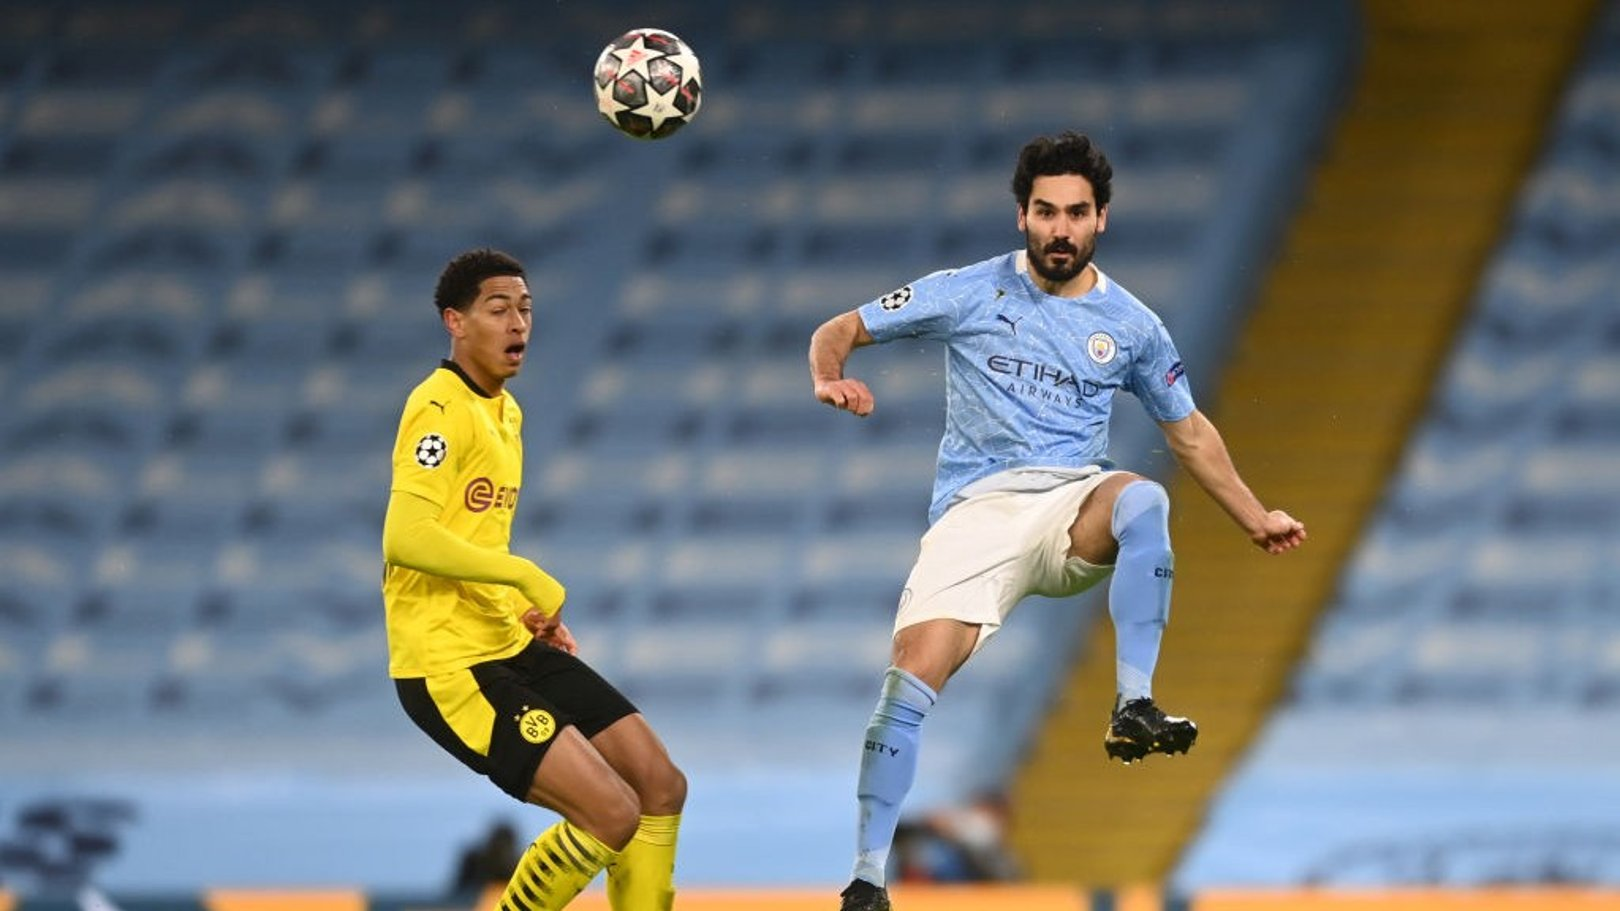 Gundogan launches campaign to raise funds for young girl's life-saving treatment